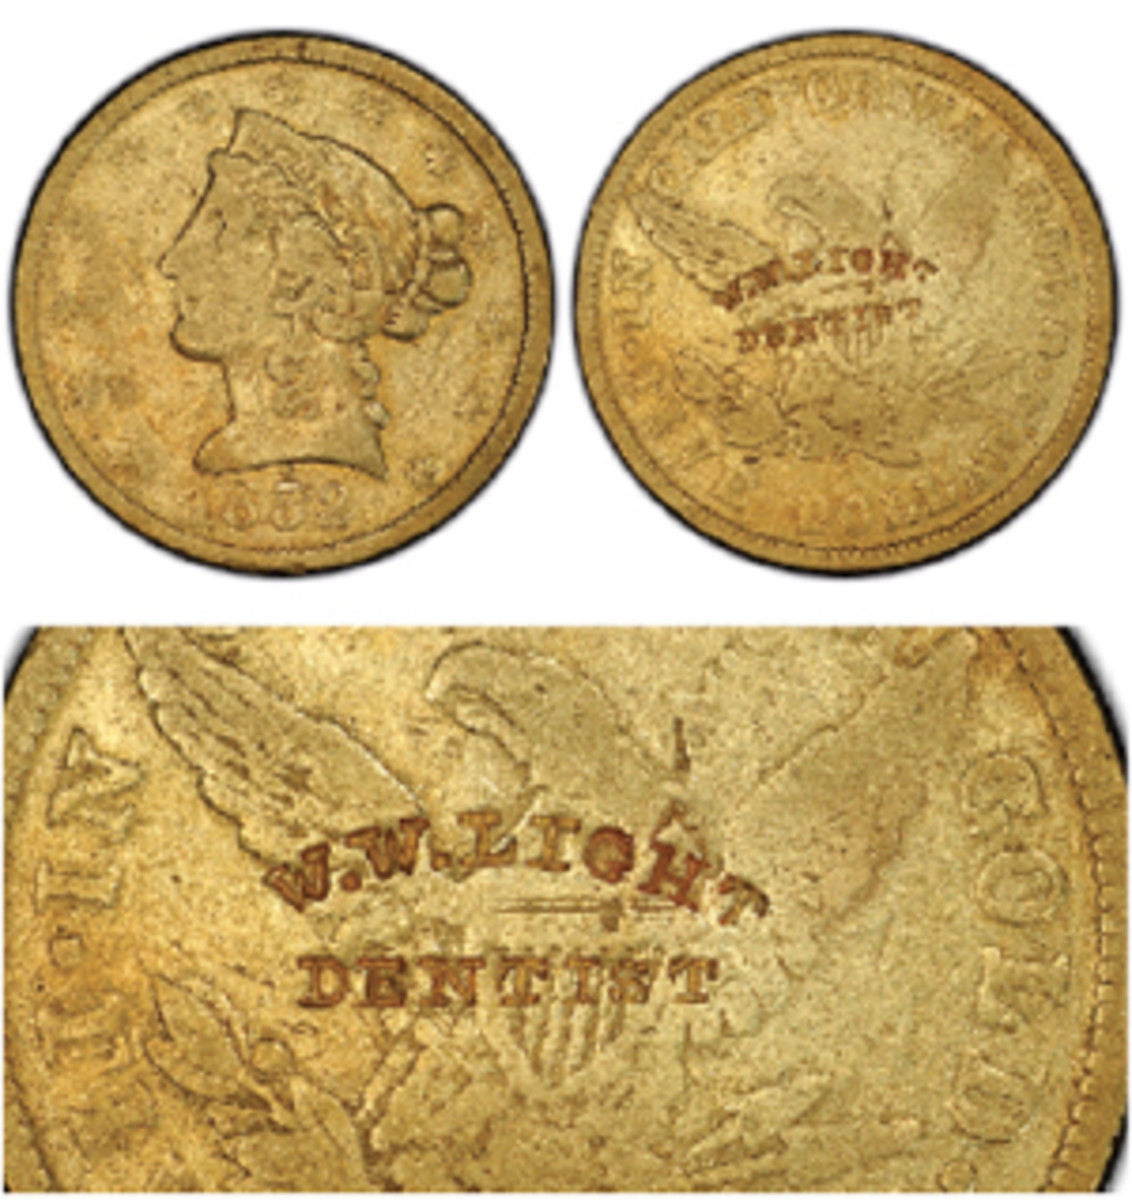 """A Small Head variety 1852 Wass Molitor $5 gold coin, with a counterstamp advertising Sacramento dentist W.W. Light, is among the 105 California Gold Rush Territorial coins recovered during the last expedition to the fabled Ship of Gold, the """"SS Central America."""" (Image courtesy Professional Coin Grading Service www.PCGS.com.)"""